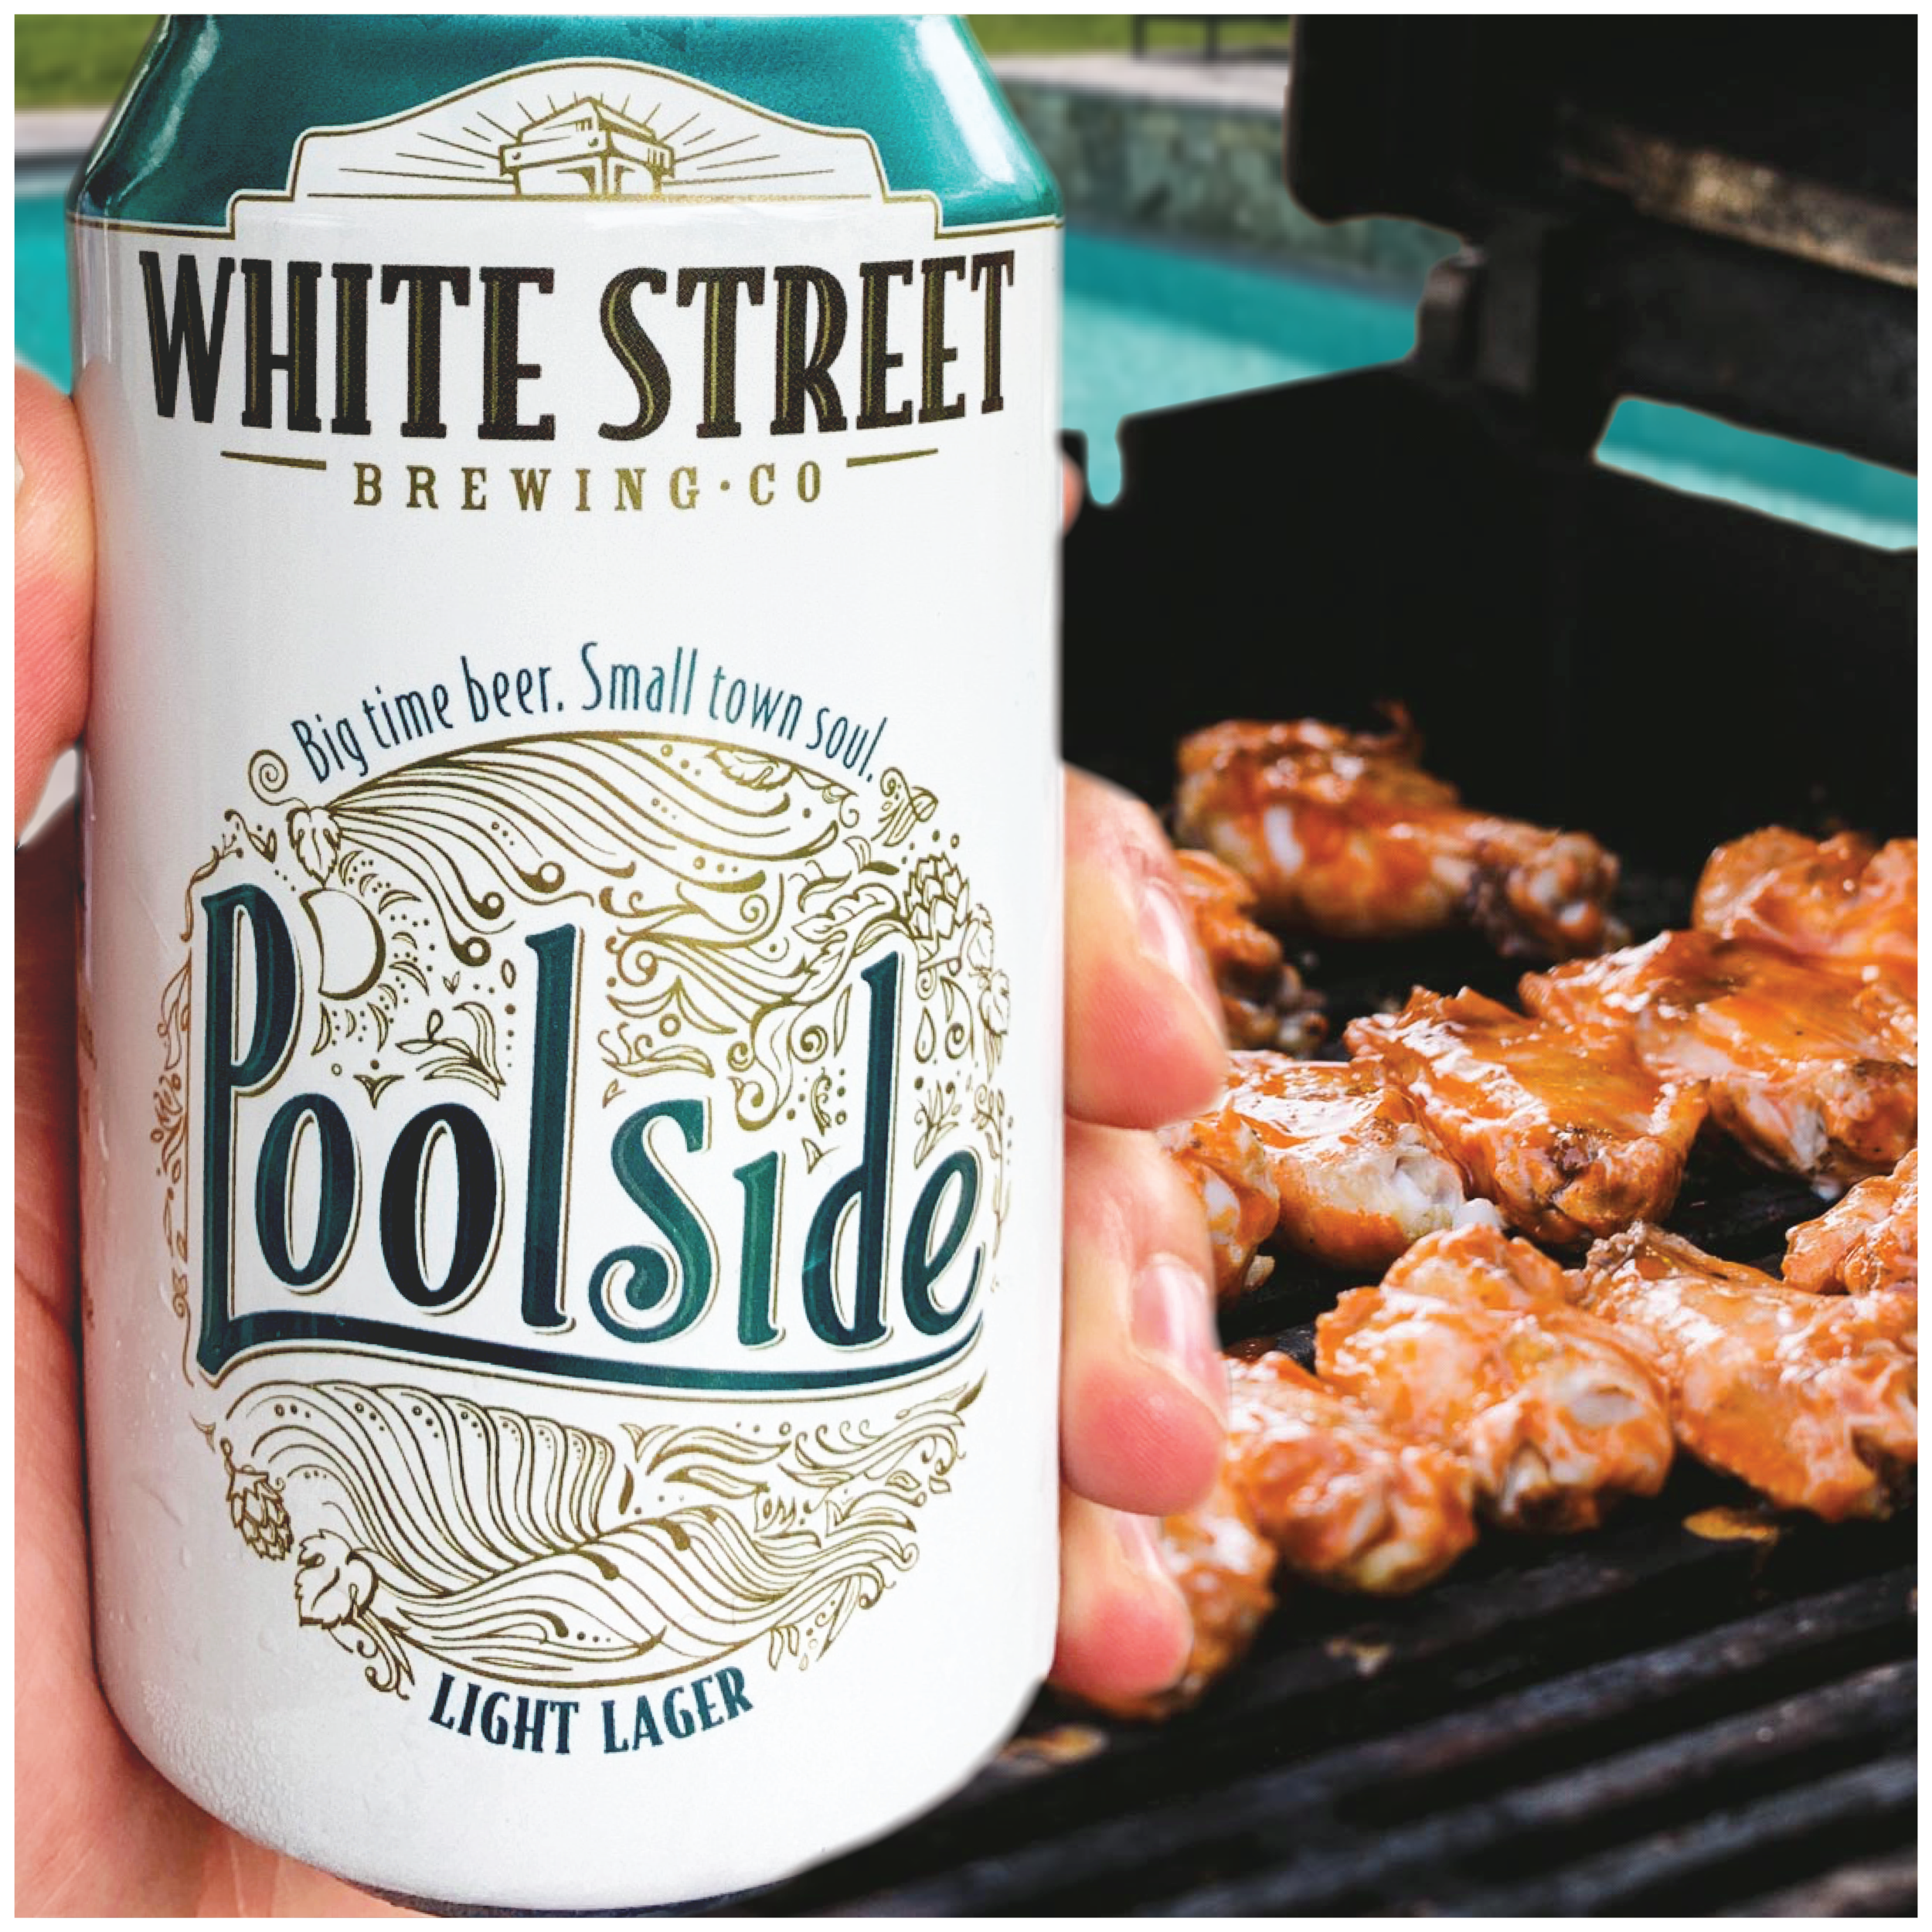 Turn up the flavors of Summer! - Check out this recipe for Sweet and Spicy Poolside Wings